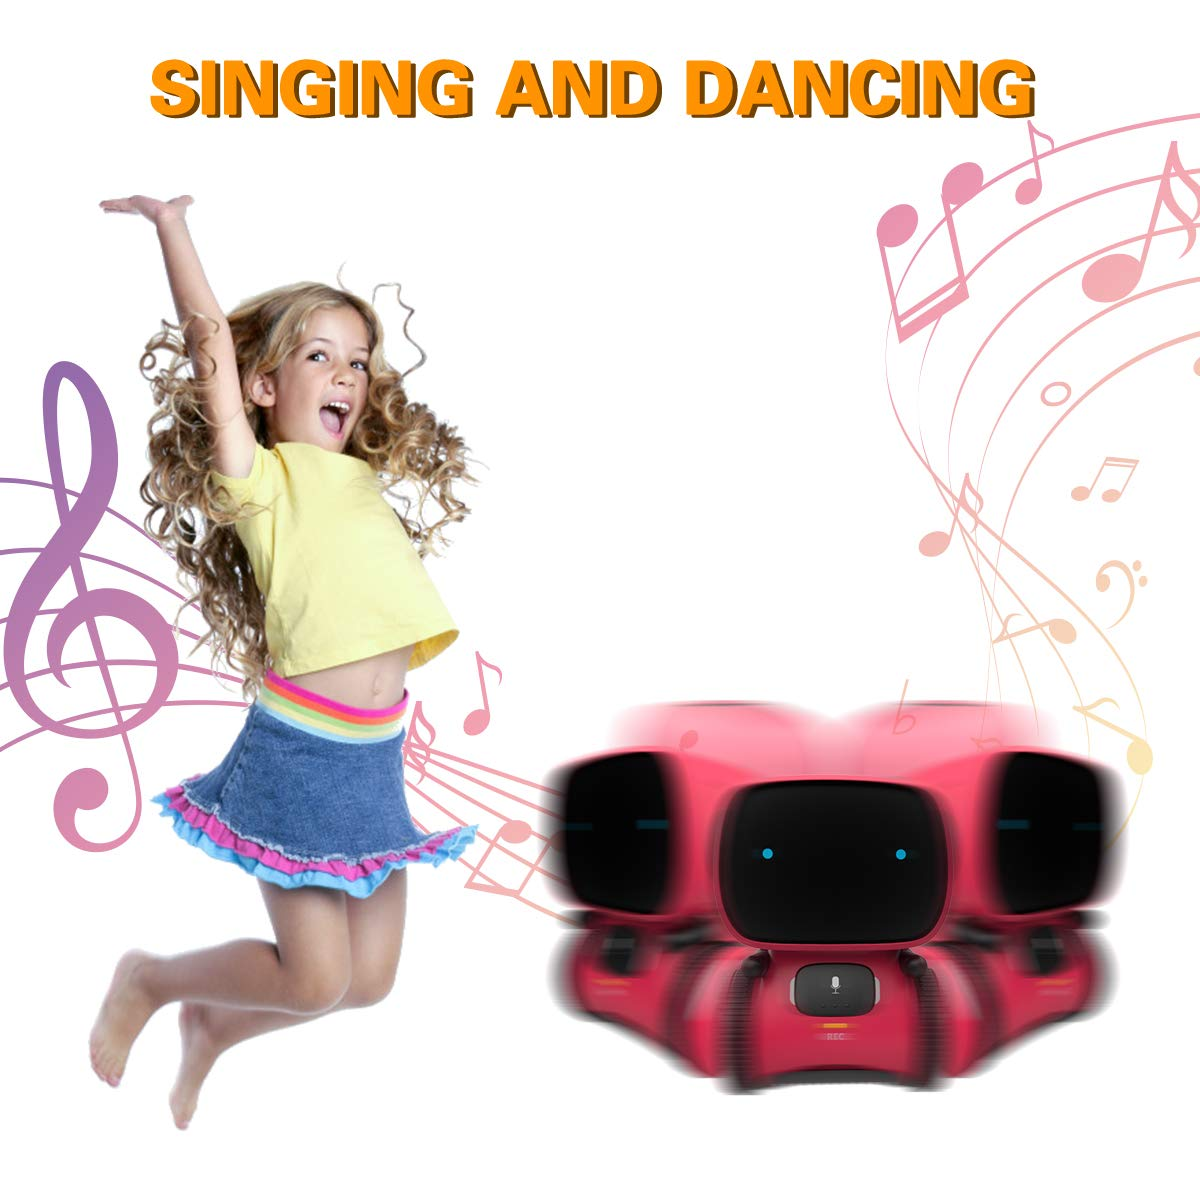 98K Kids Robot Toy, Smart Talking Robots, Gift for Boys and Girls Age 3+, Intelligent Partner and Teacher, with Voice Controlled and Touch Sensor, Singing, Dancing, Repeating by 98K (Image #5)